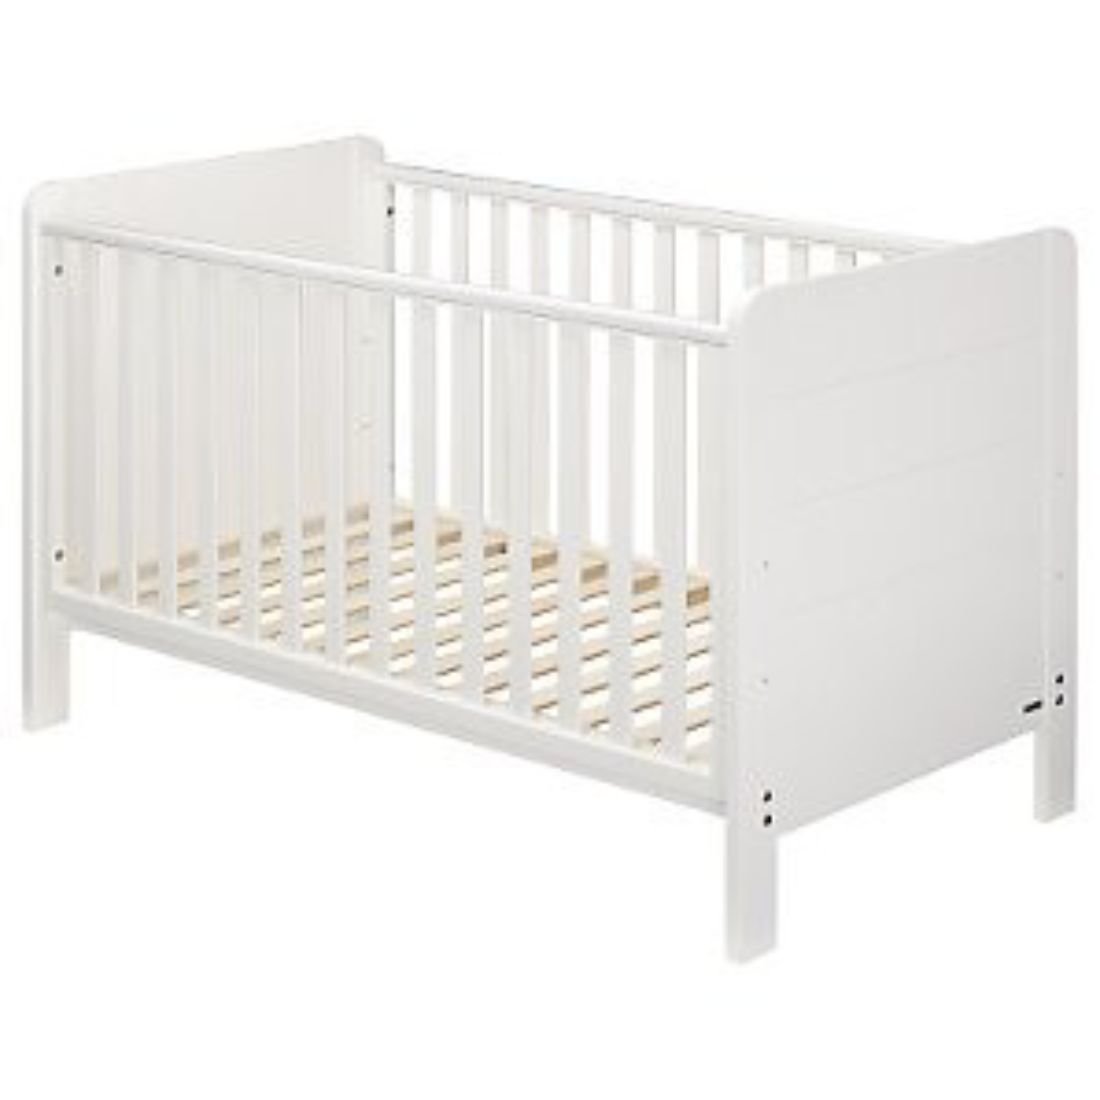 Cheap Price John Lewis Broadway Cotbed Street Price Cotbeds Nursery Decoration & Furniture